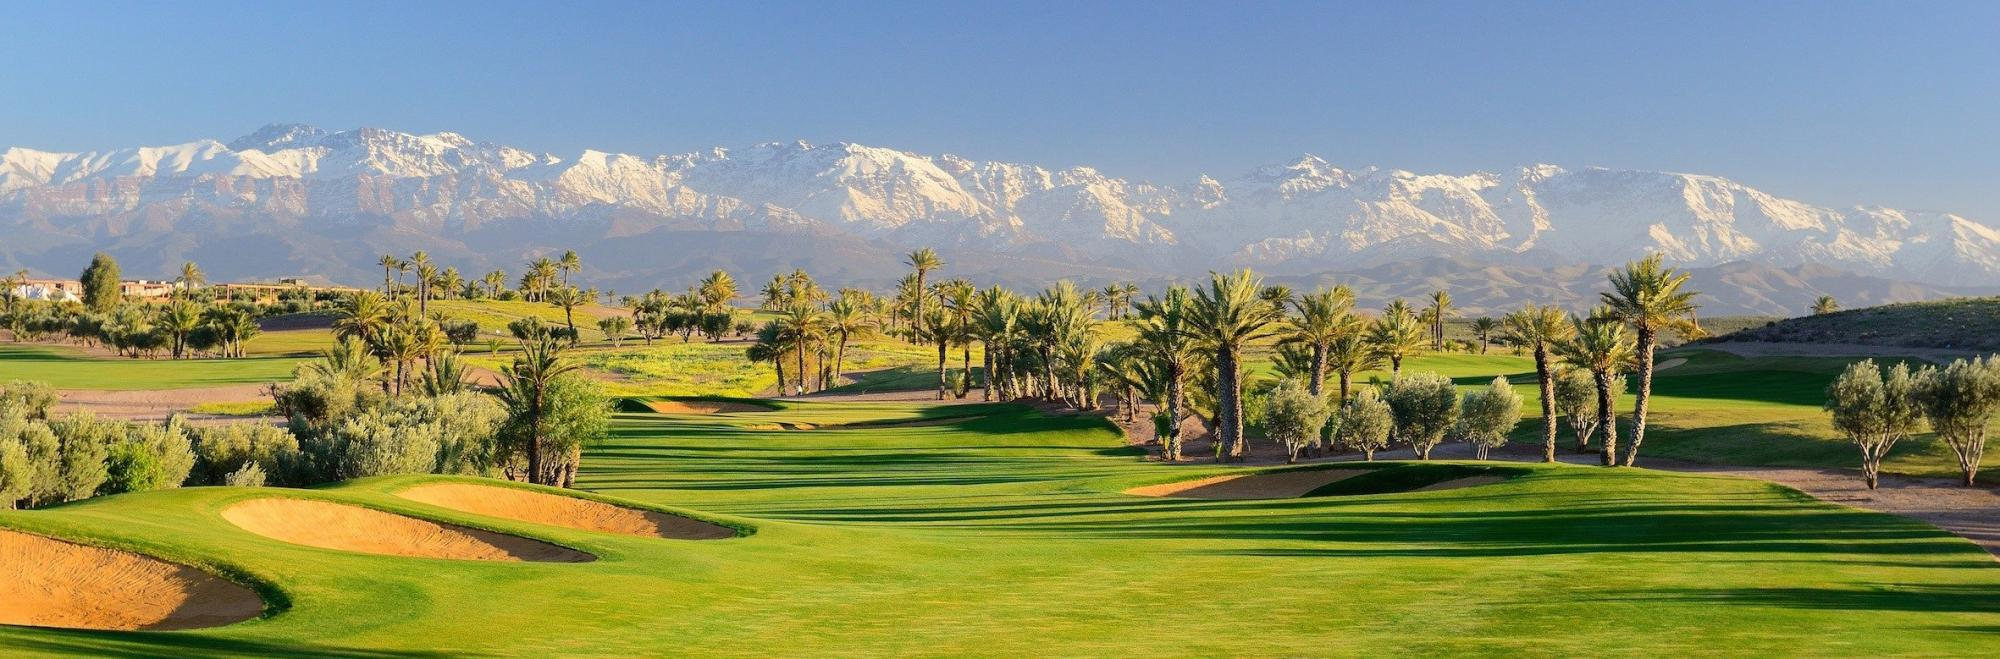 View Assoufid Golf Club's impressive golf course situated in incredible Morocco.